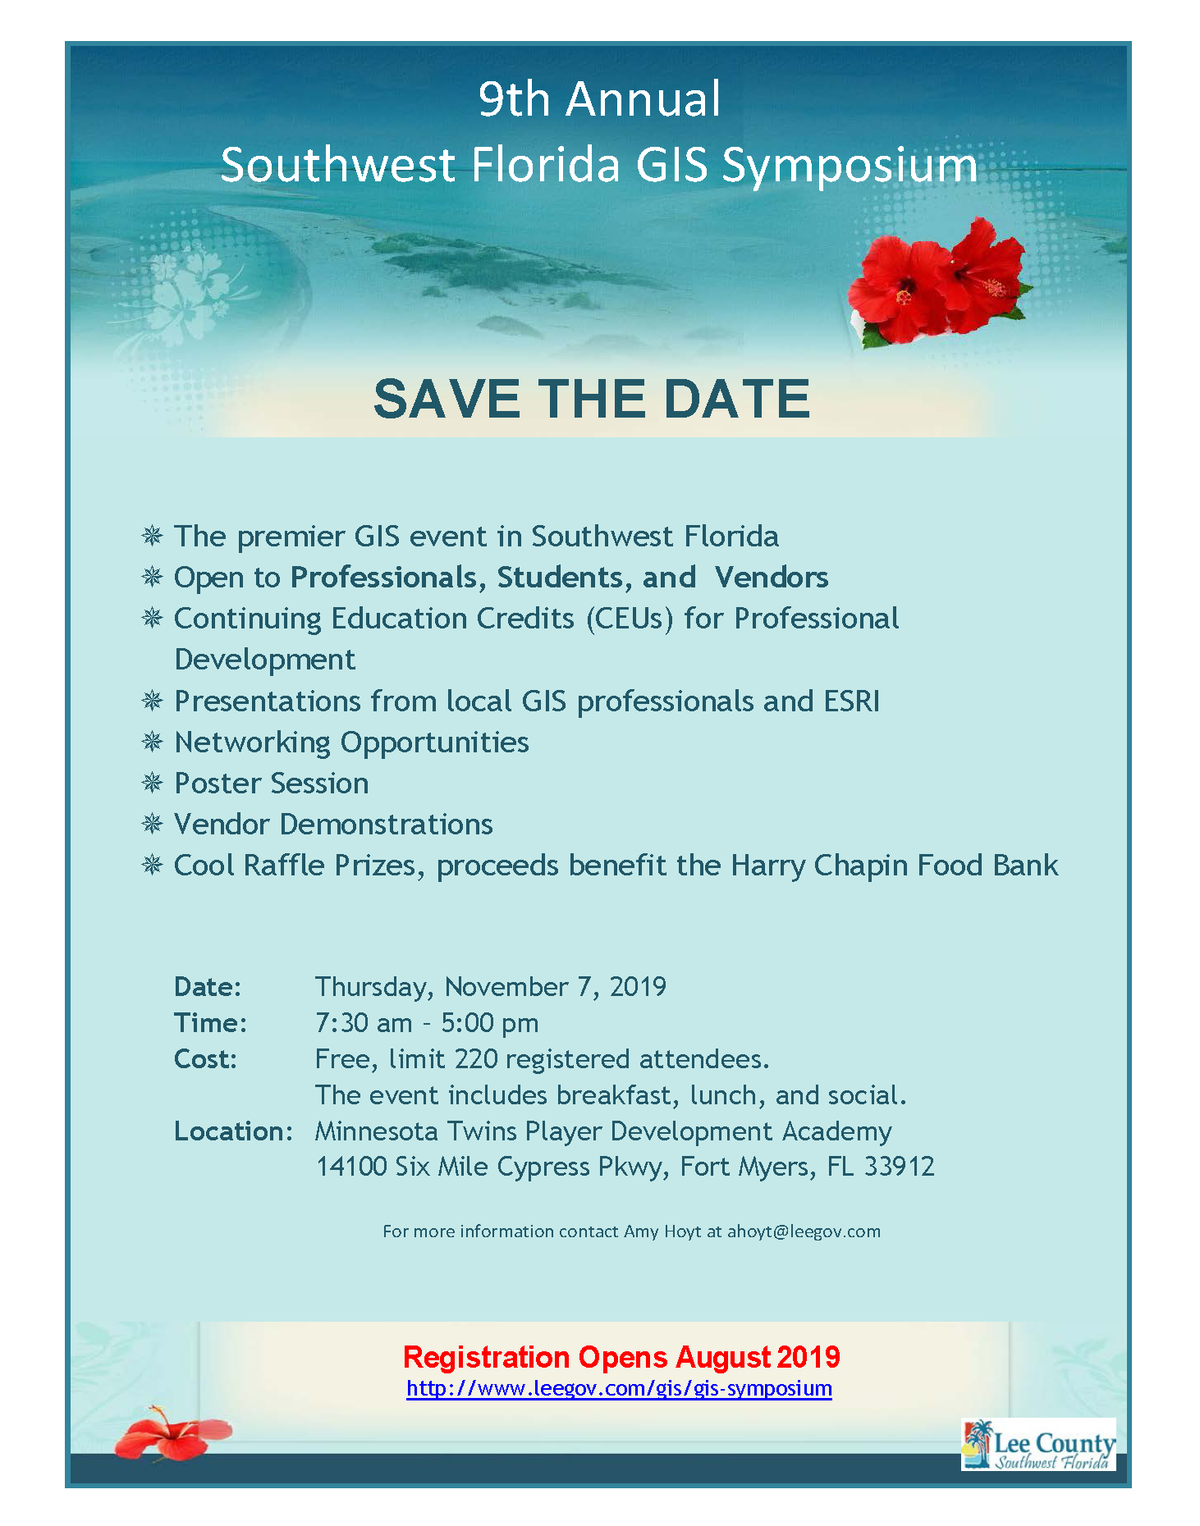 2019 SWFL GIS symposium save the date flier